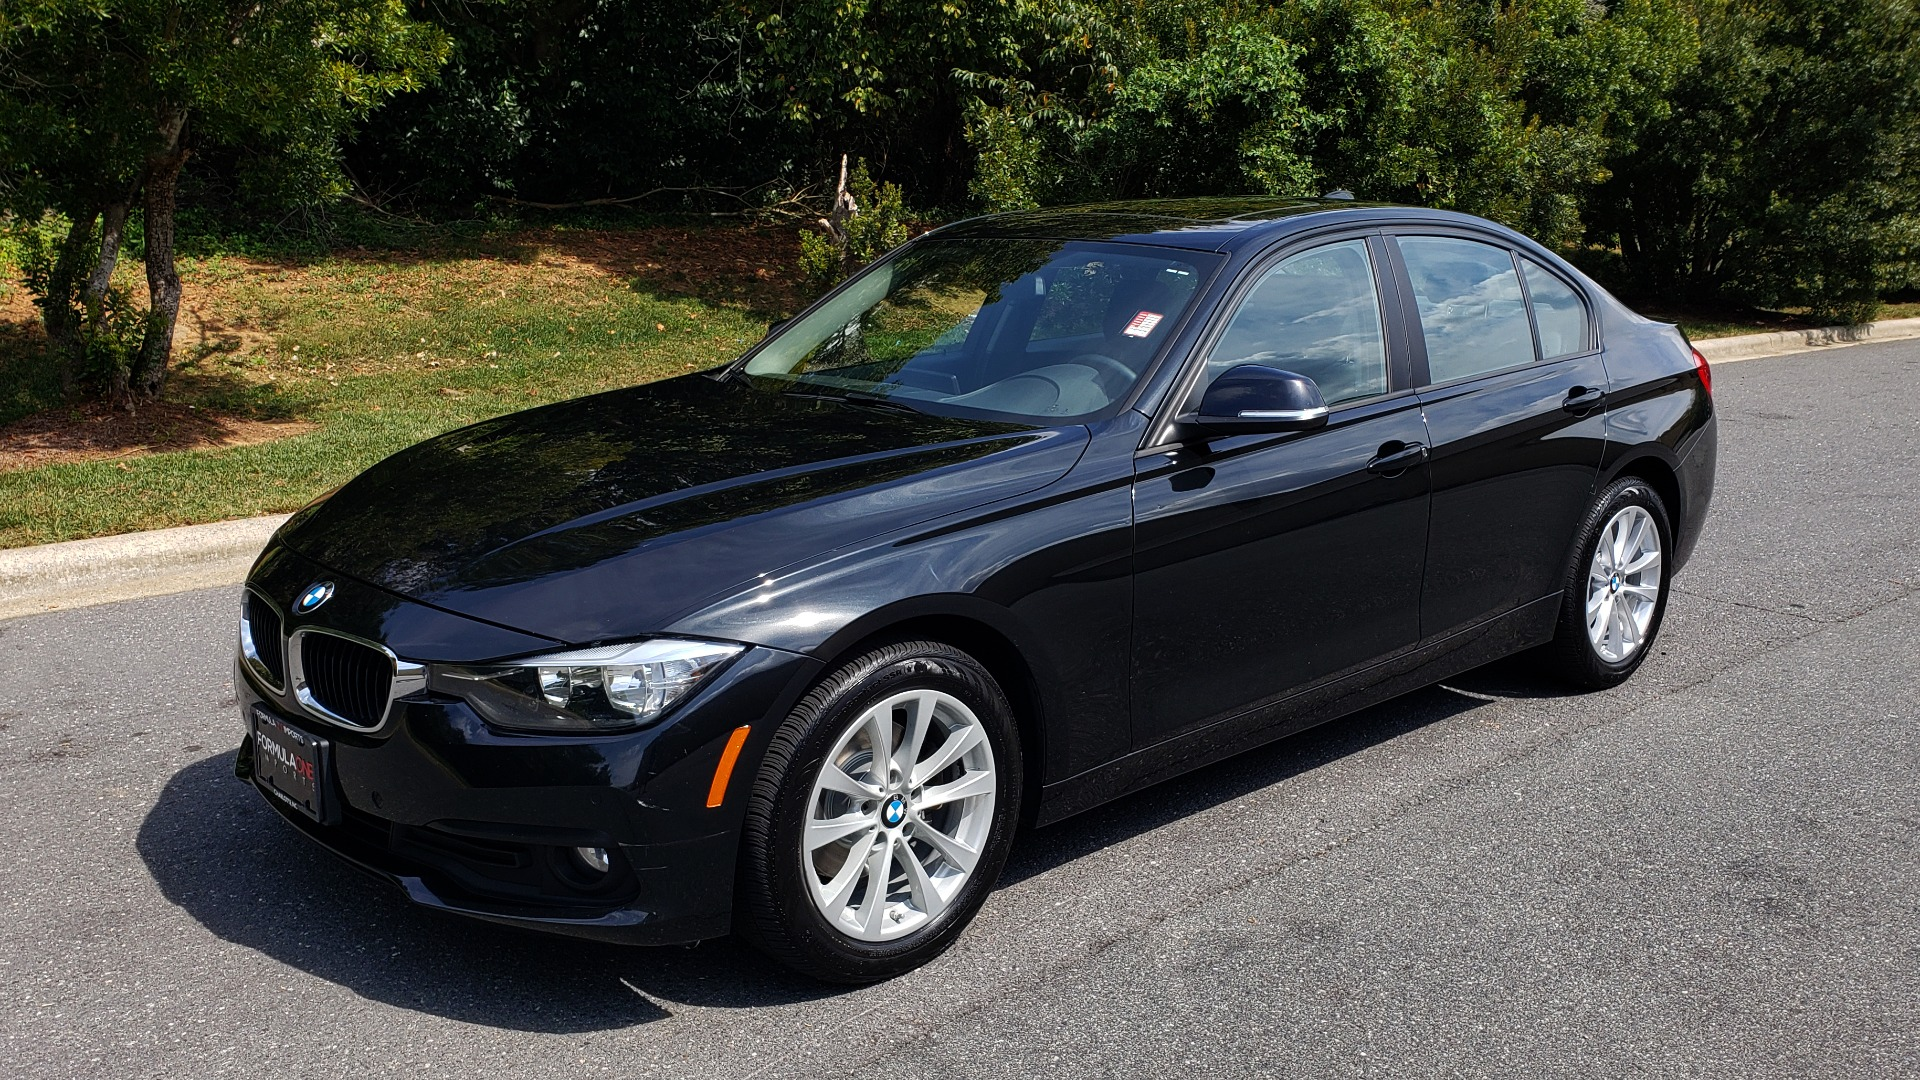 Used 2017 BMW 3 SERIES 320I XDRIVE / DRVR ASST / NAV / SUNROOF / HTD STS / REARVIEW for sale $21,995 at Formula Imports in Charlotte NC 28227 1